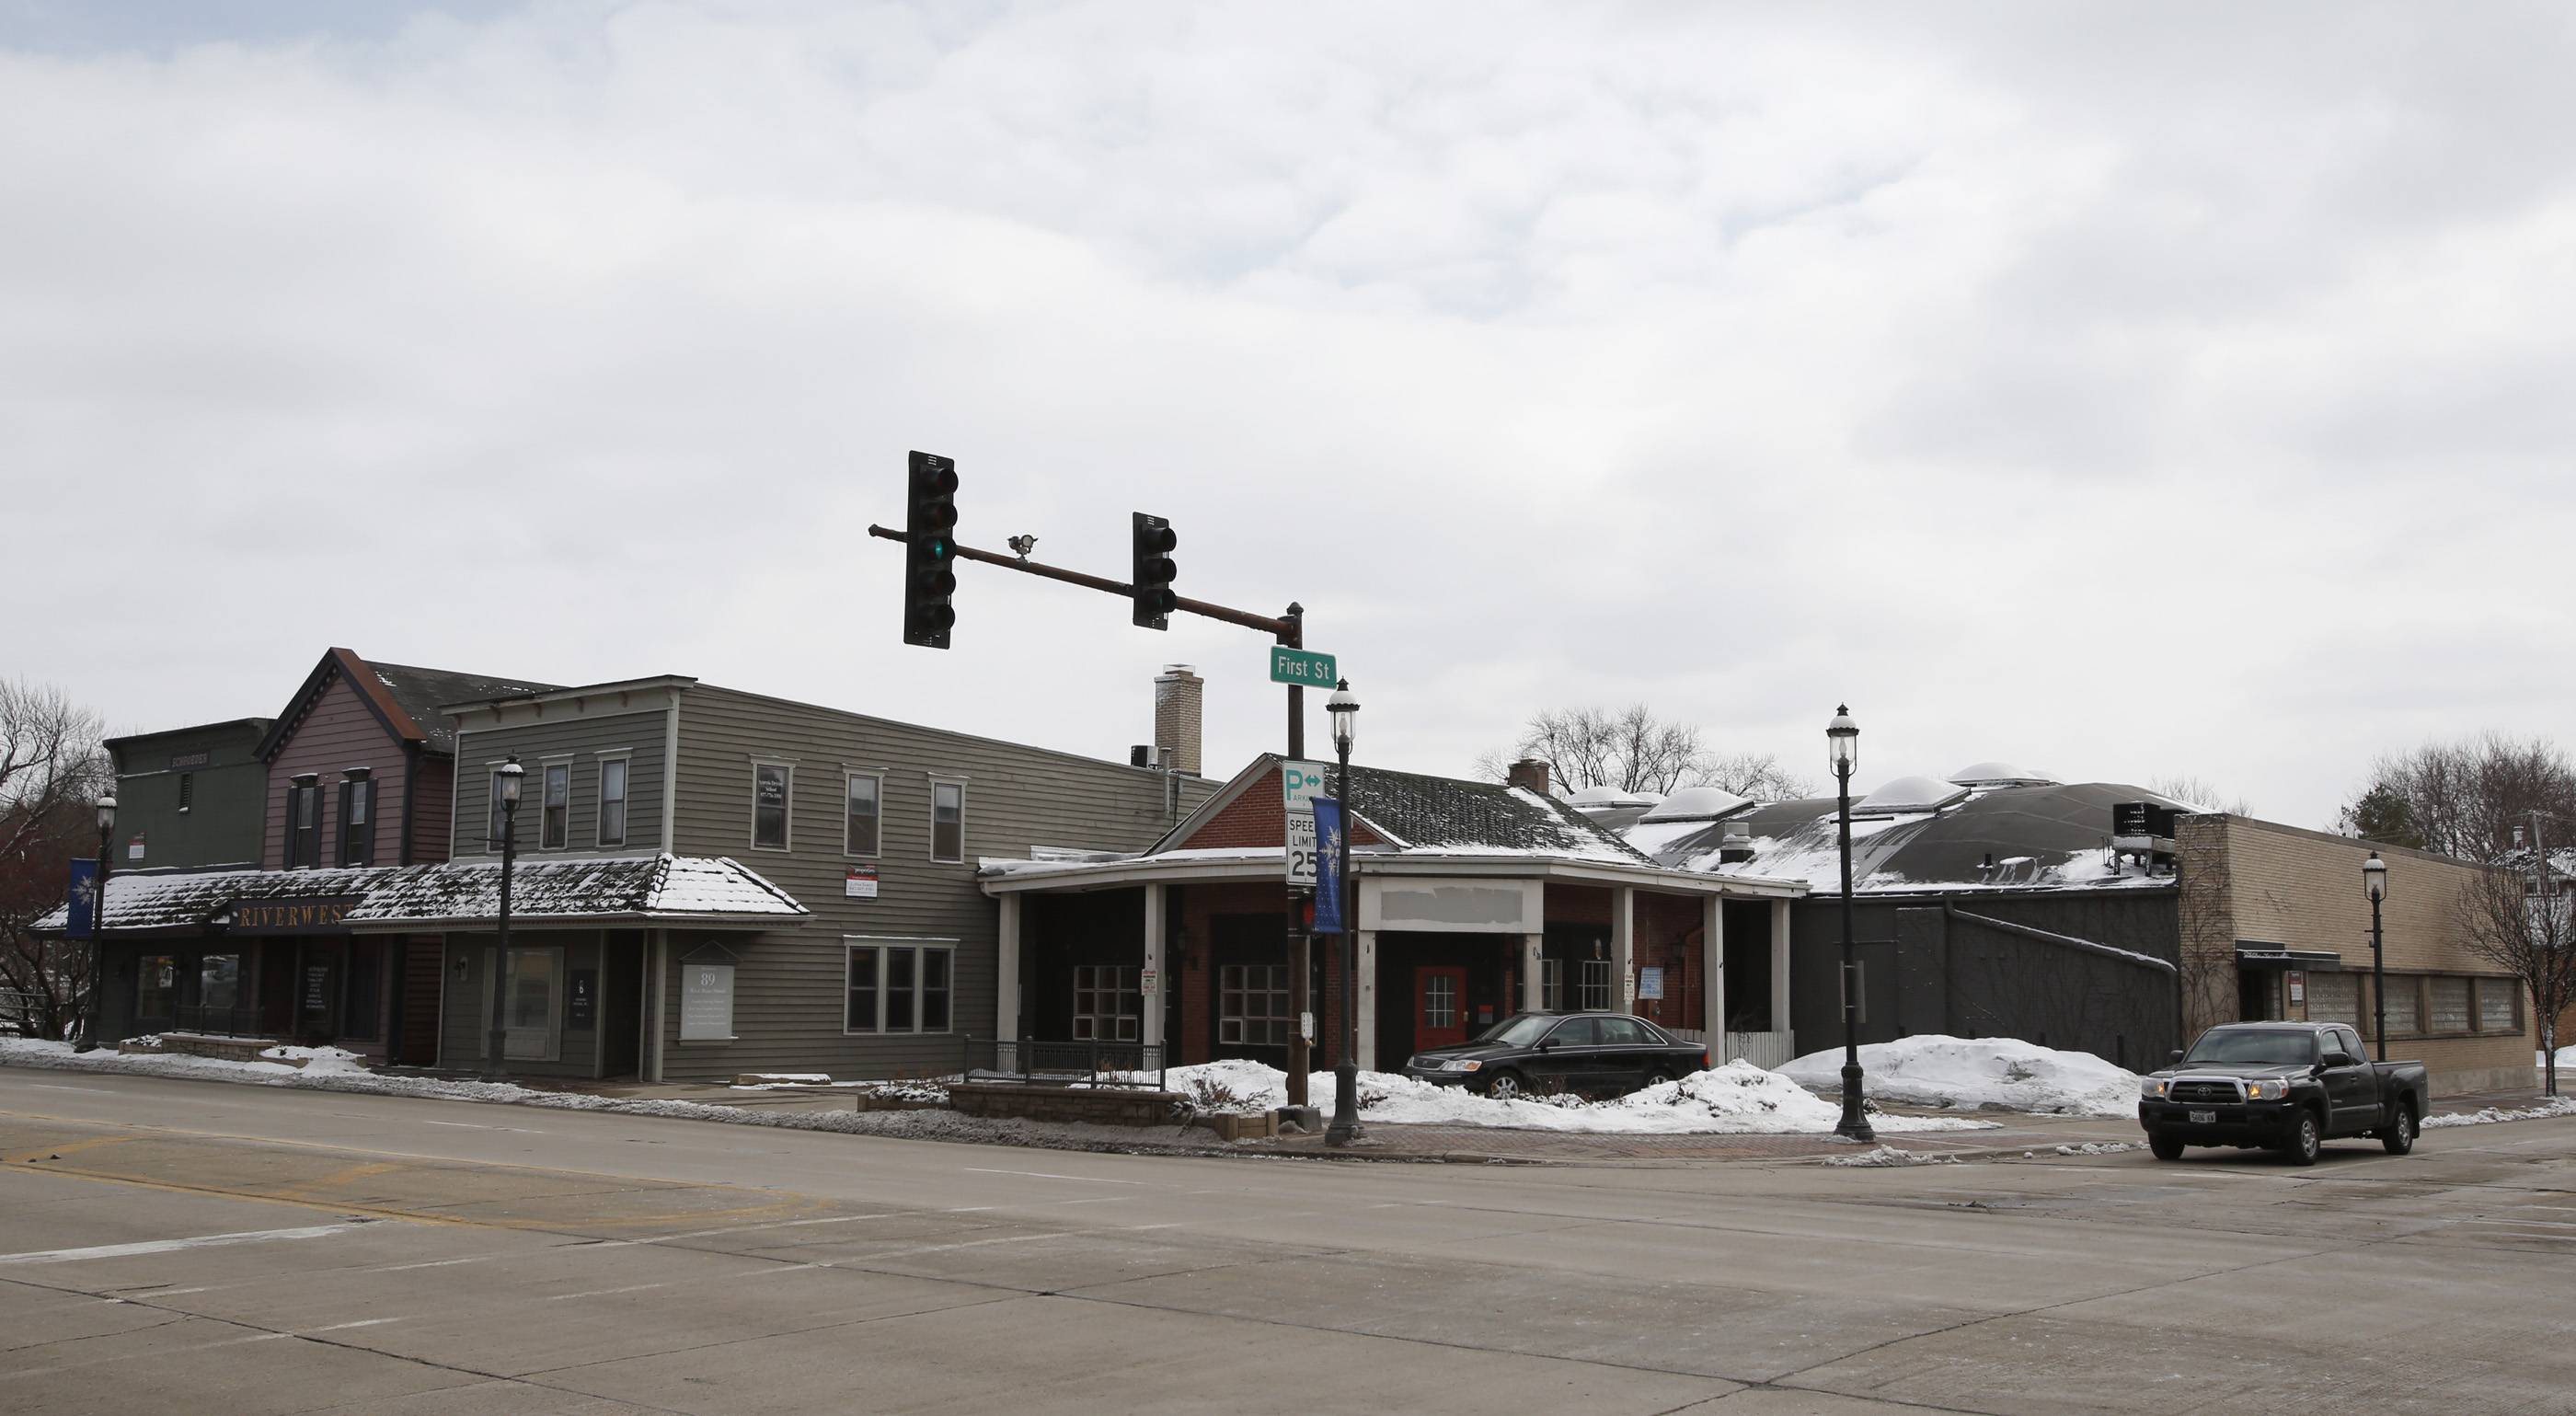 West Dundee hired a consultant this week that will create a comprehensive redevelopment plan for downtown development. The village already has plans to rehab this section of downtown at First and Main streets.